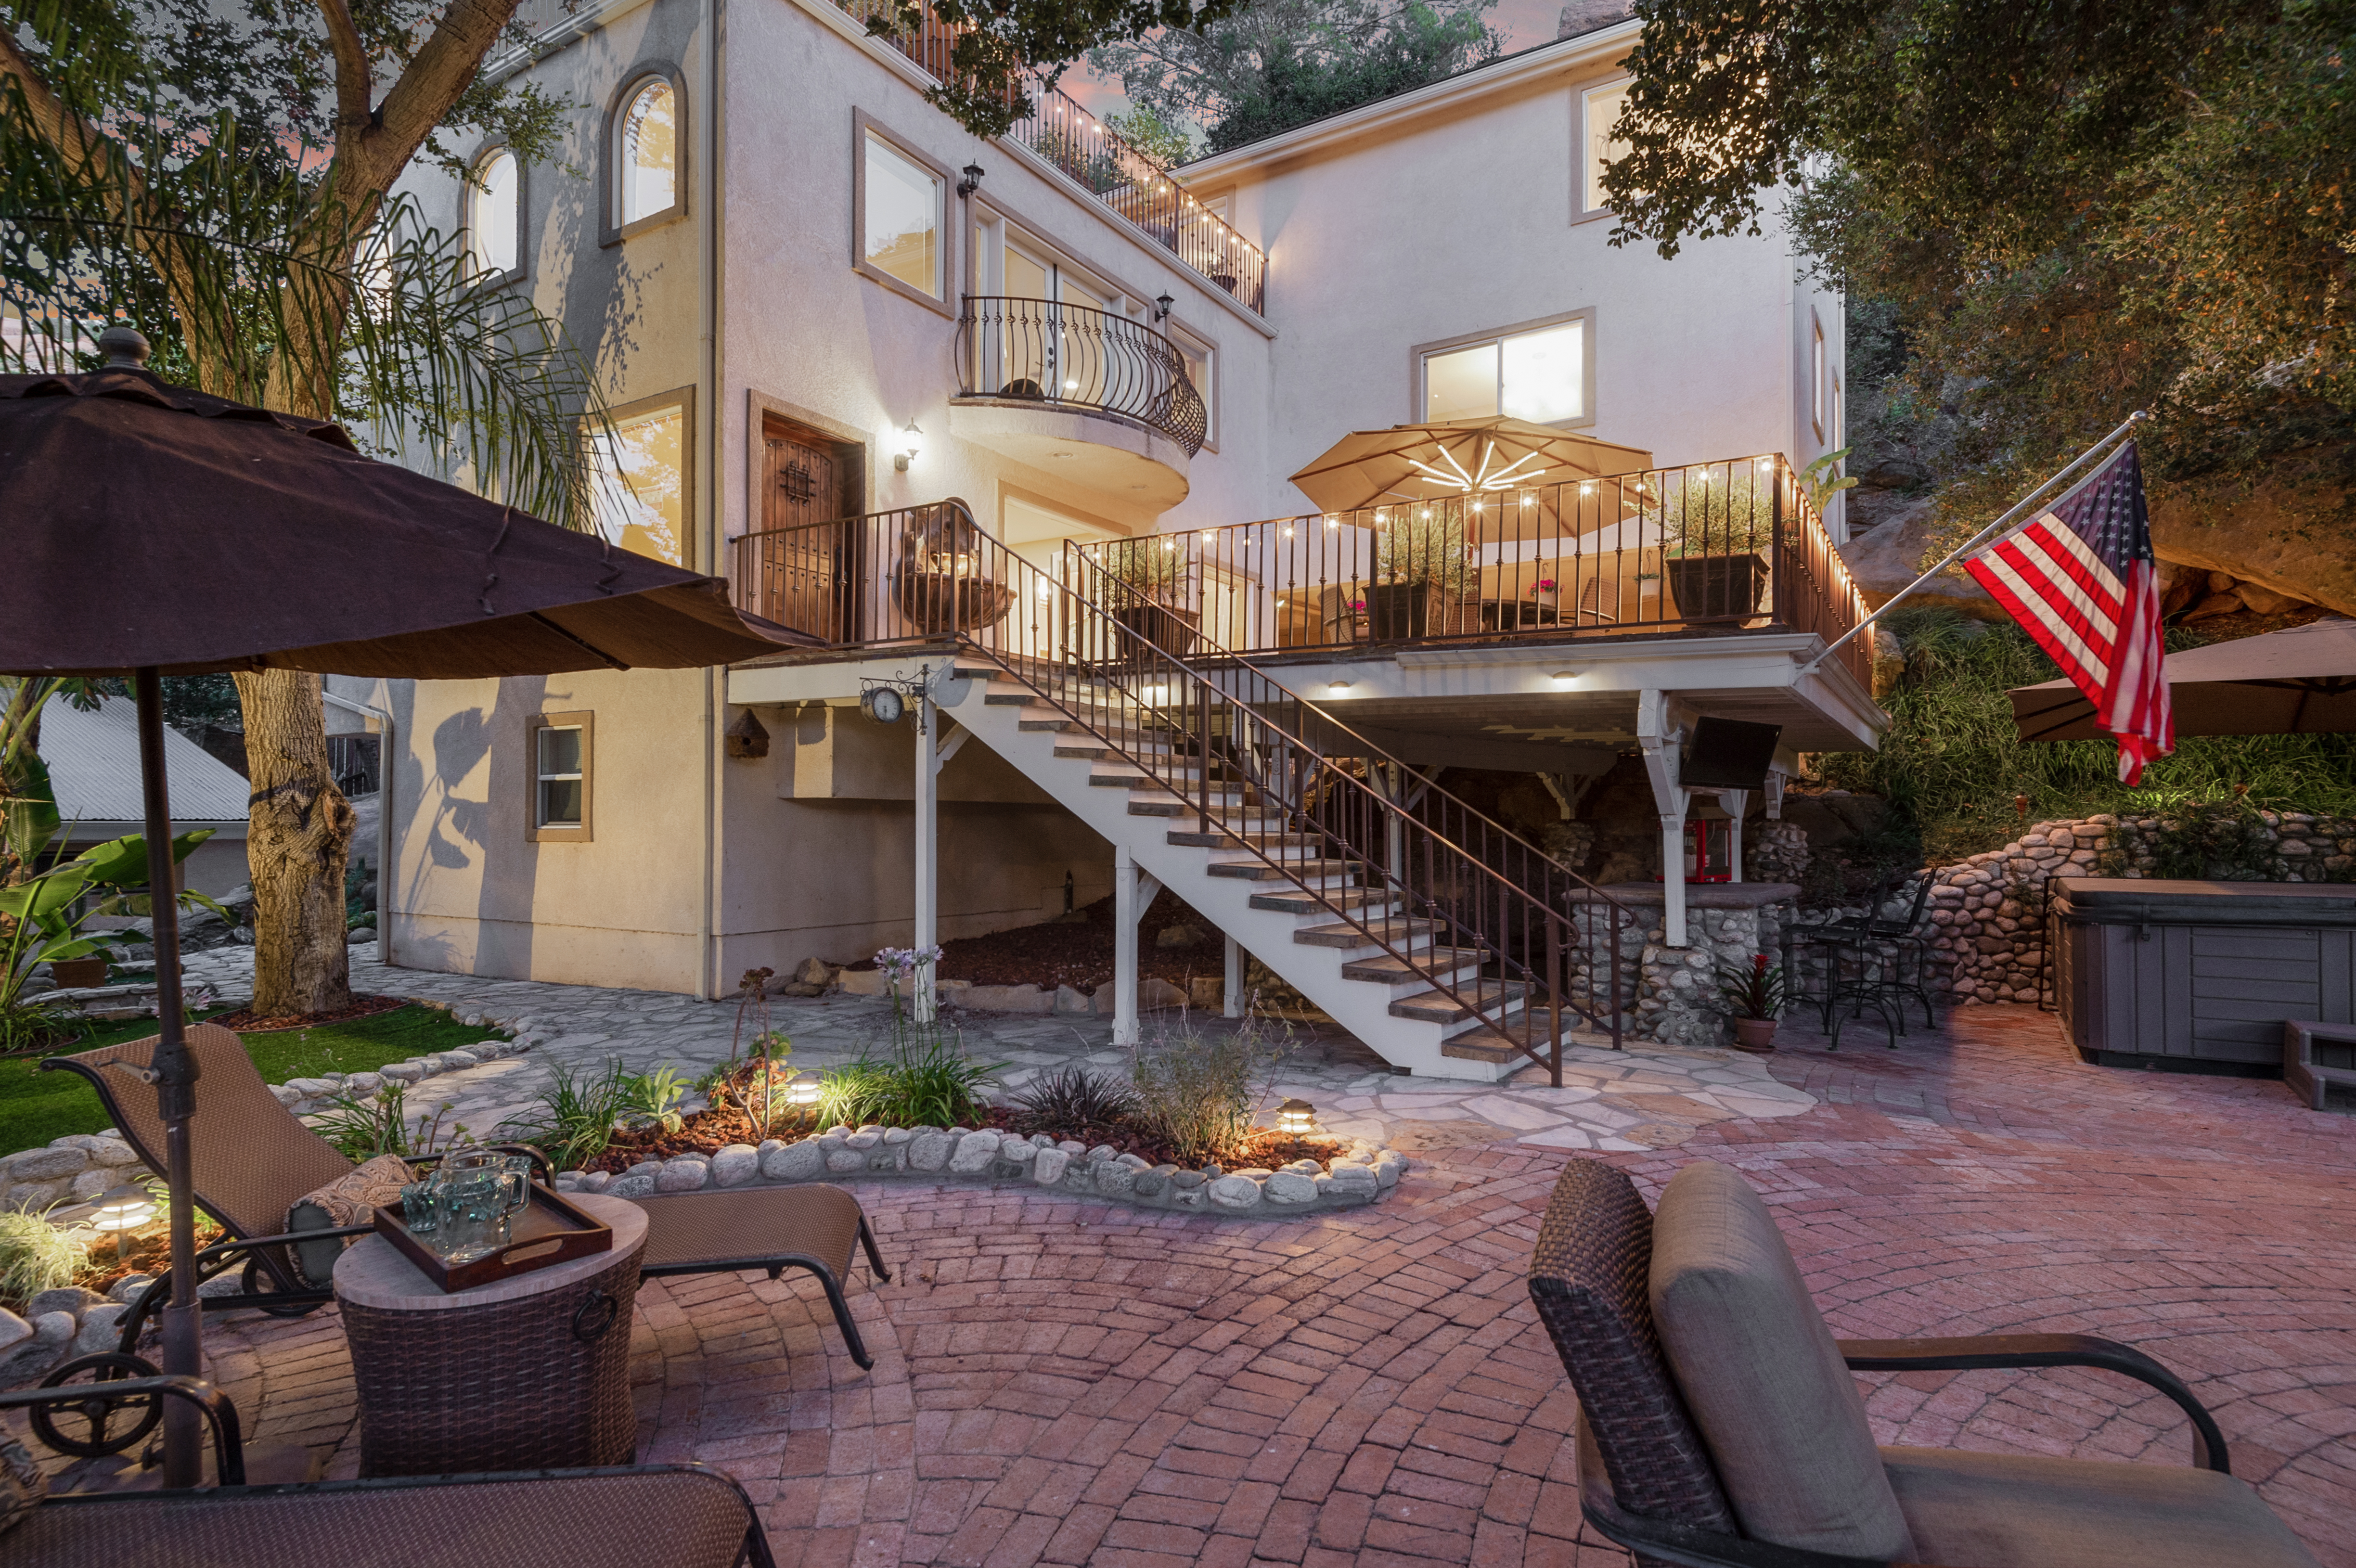 Residenza monofamiliare in vendita in 1079 Katherine Road, Simi Valley, California ,93063